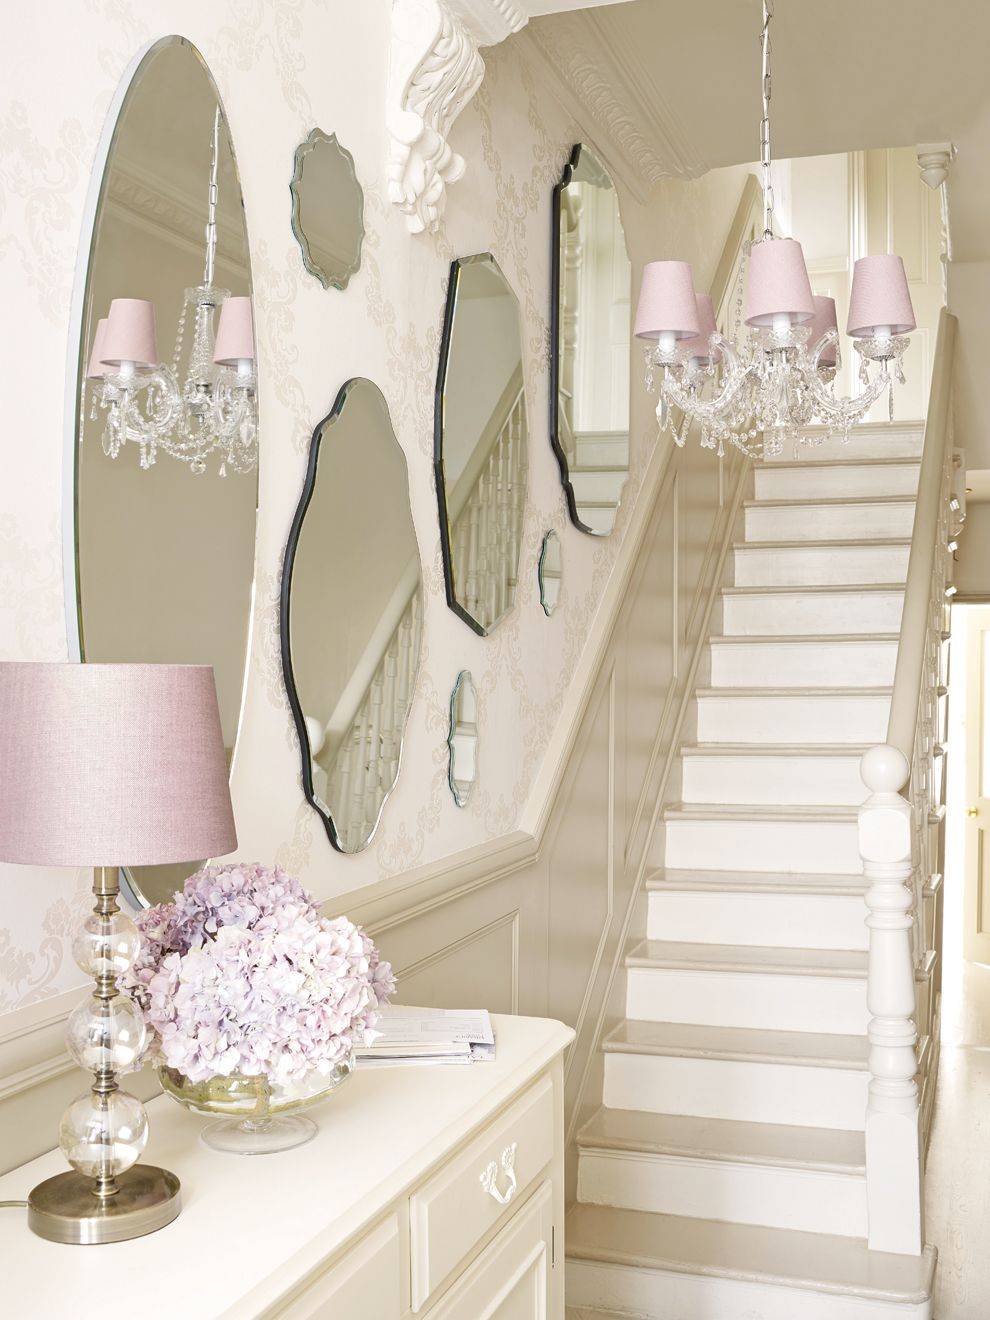 WHAT TO DO WITH MIRRORS: LAURA ASHLEY | Laura ashley, Interiors and ...